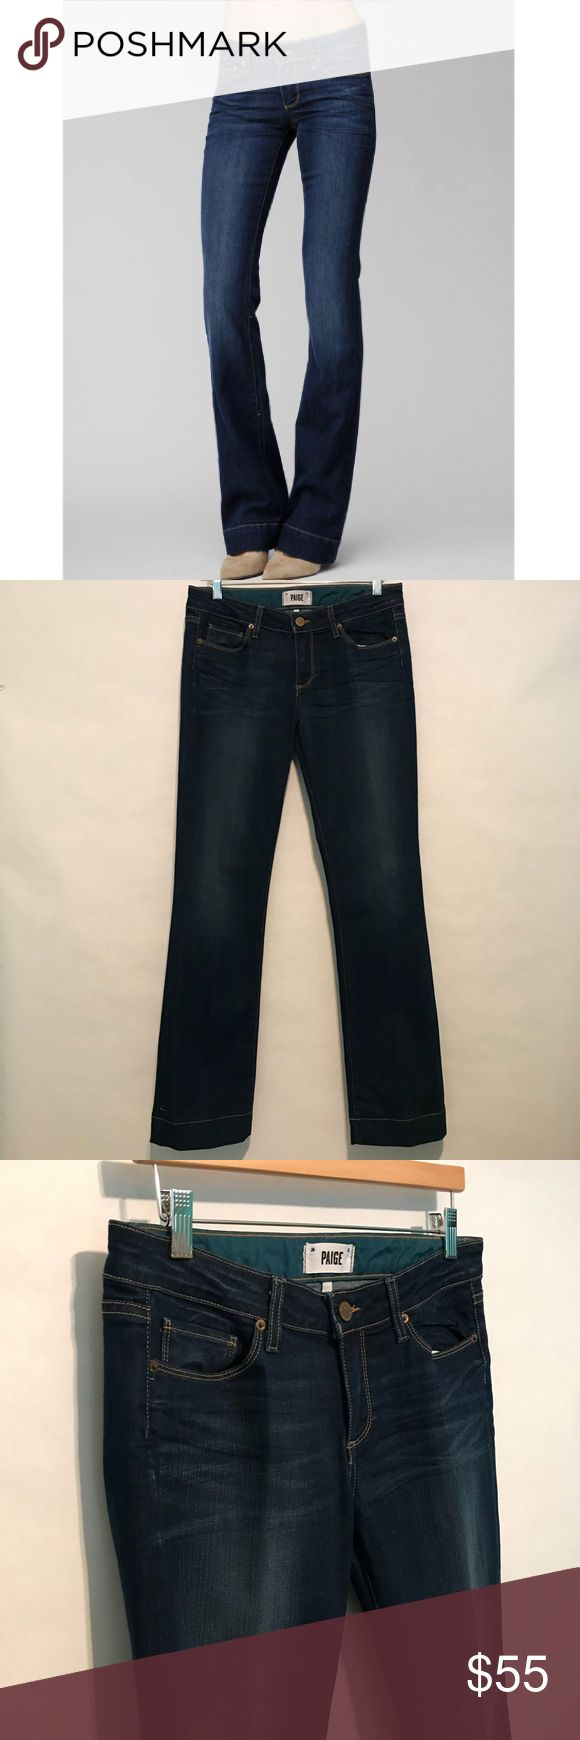 NWOT • Paige • Penny Jeans NWOT Penny Jeans. Dark wash. Straight leg. So cute! Size 29. PAIGE Jeans Straight Leg